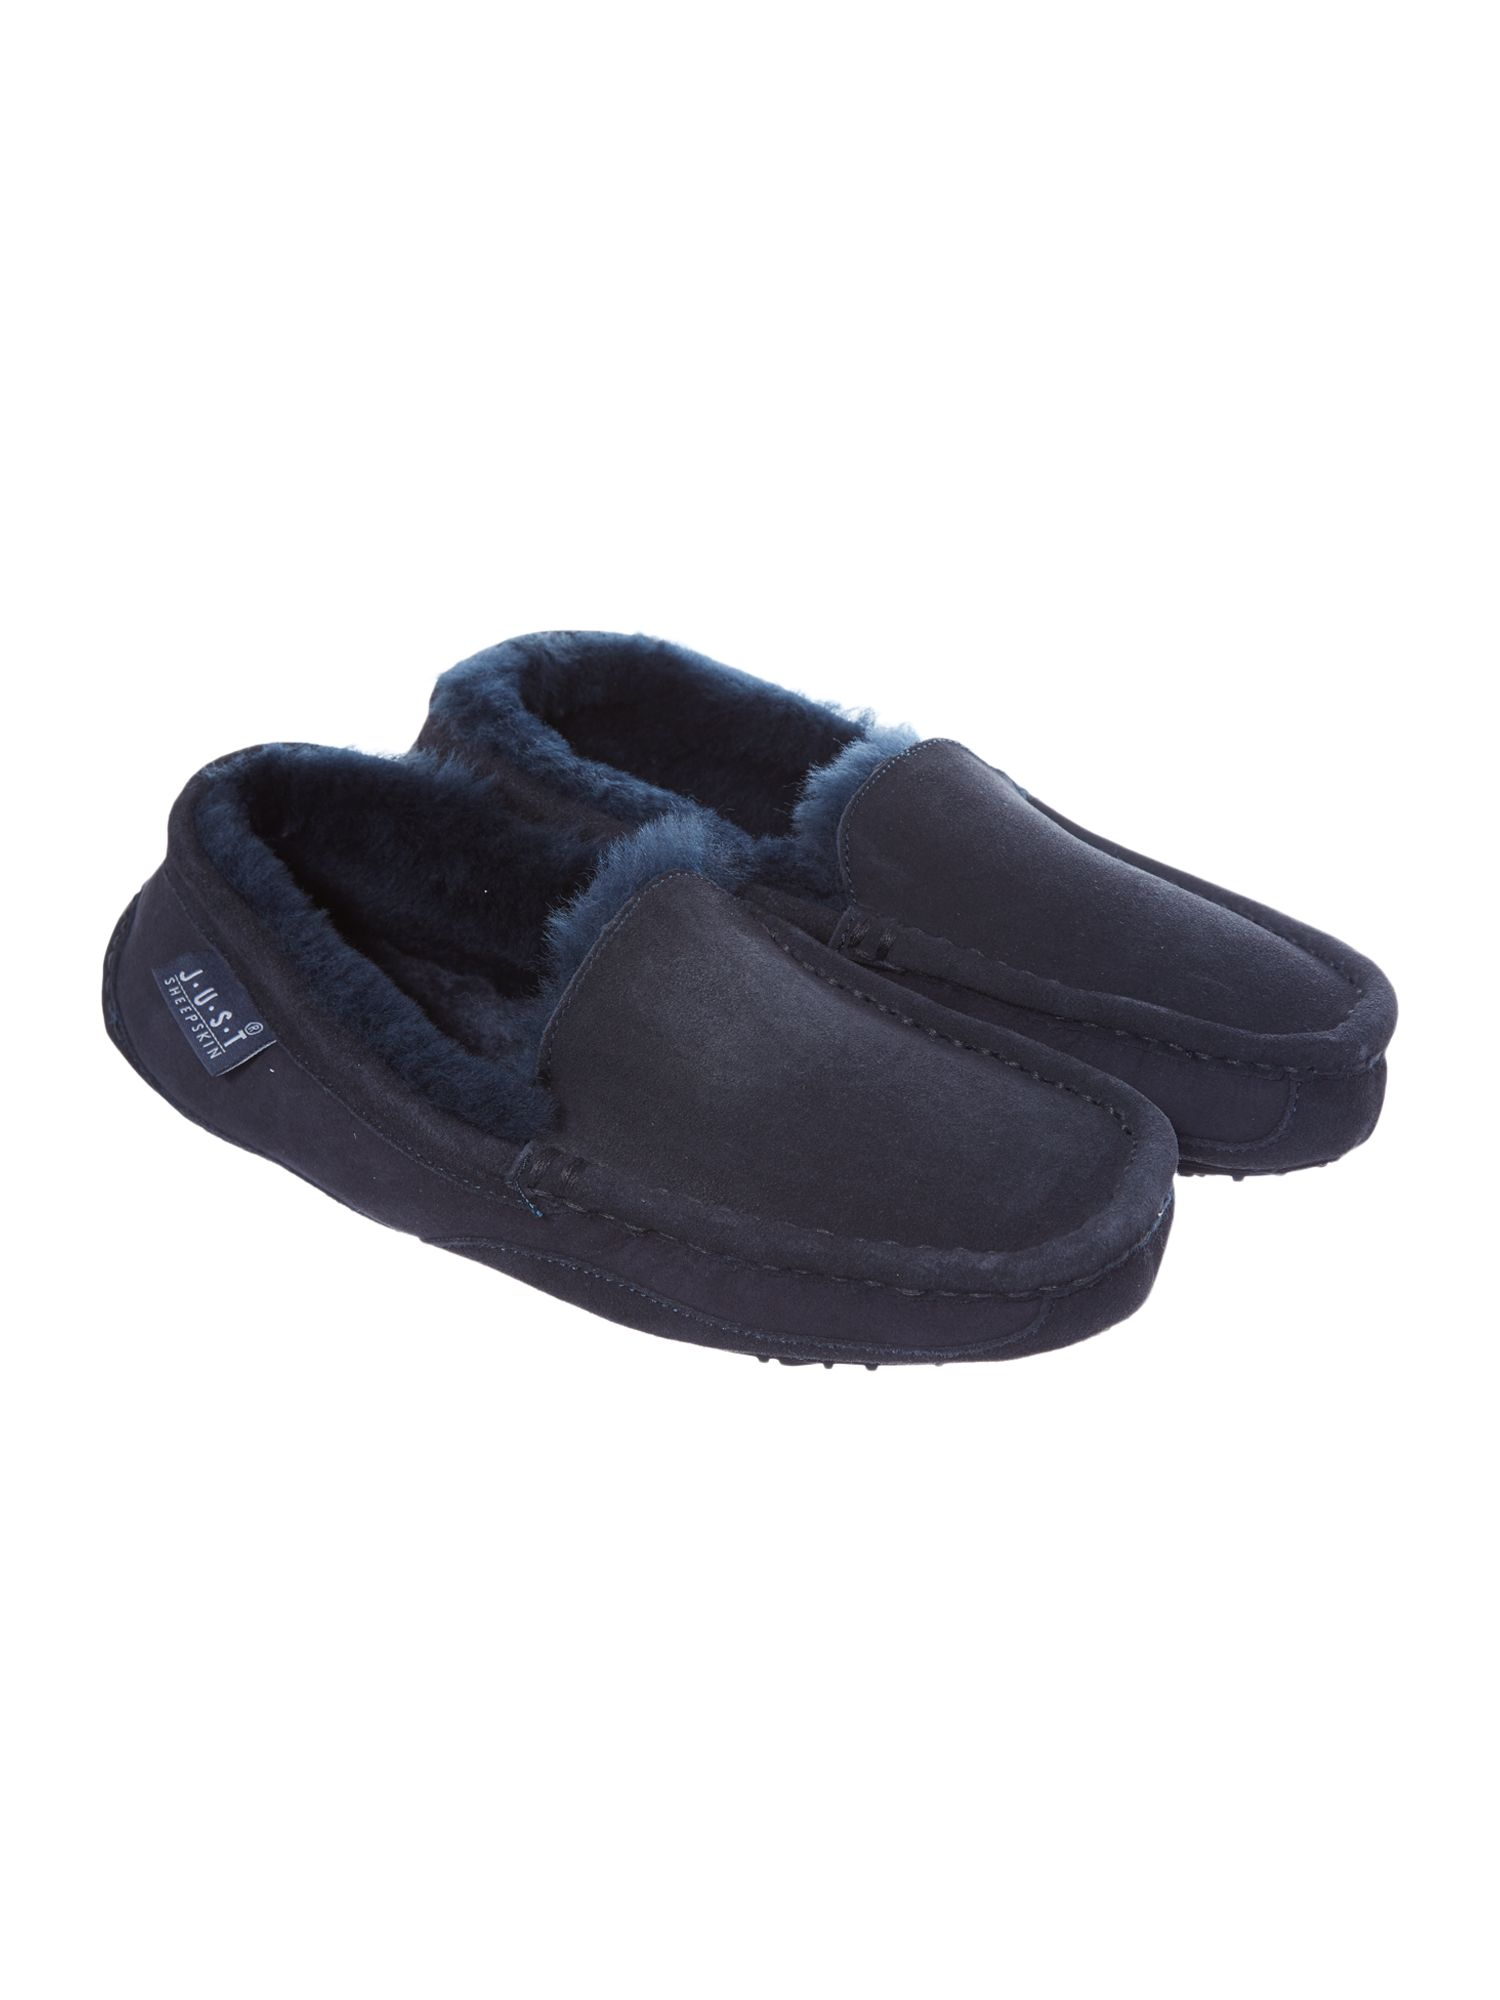 Harpley moccasin slipper